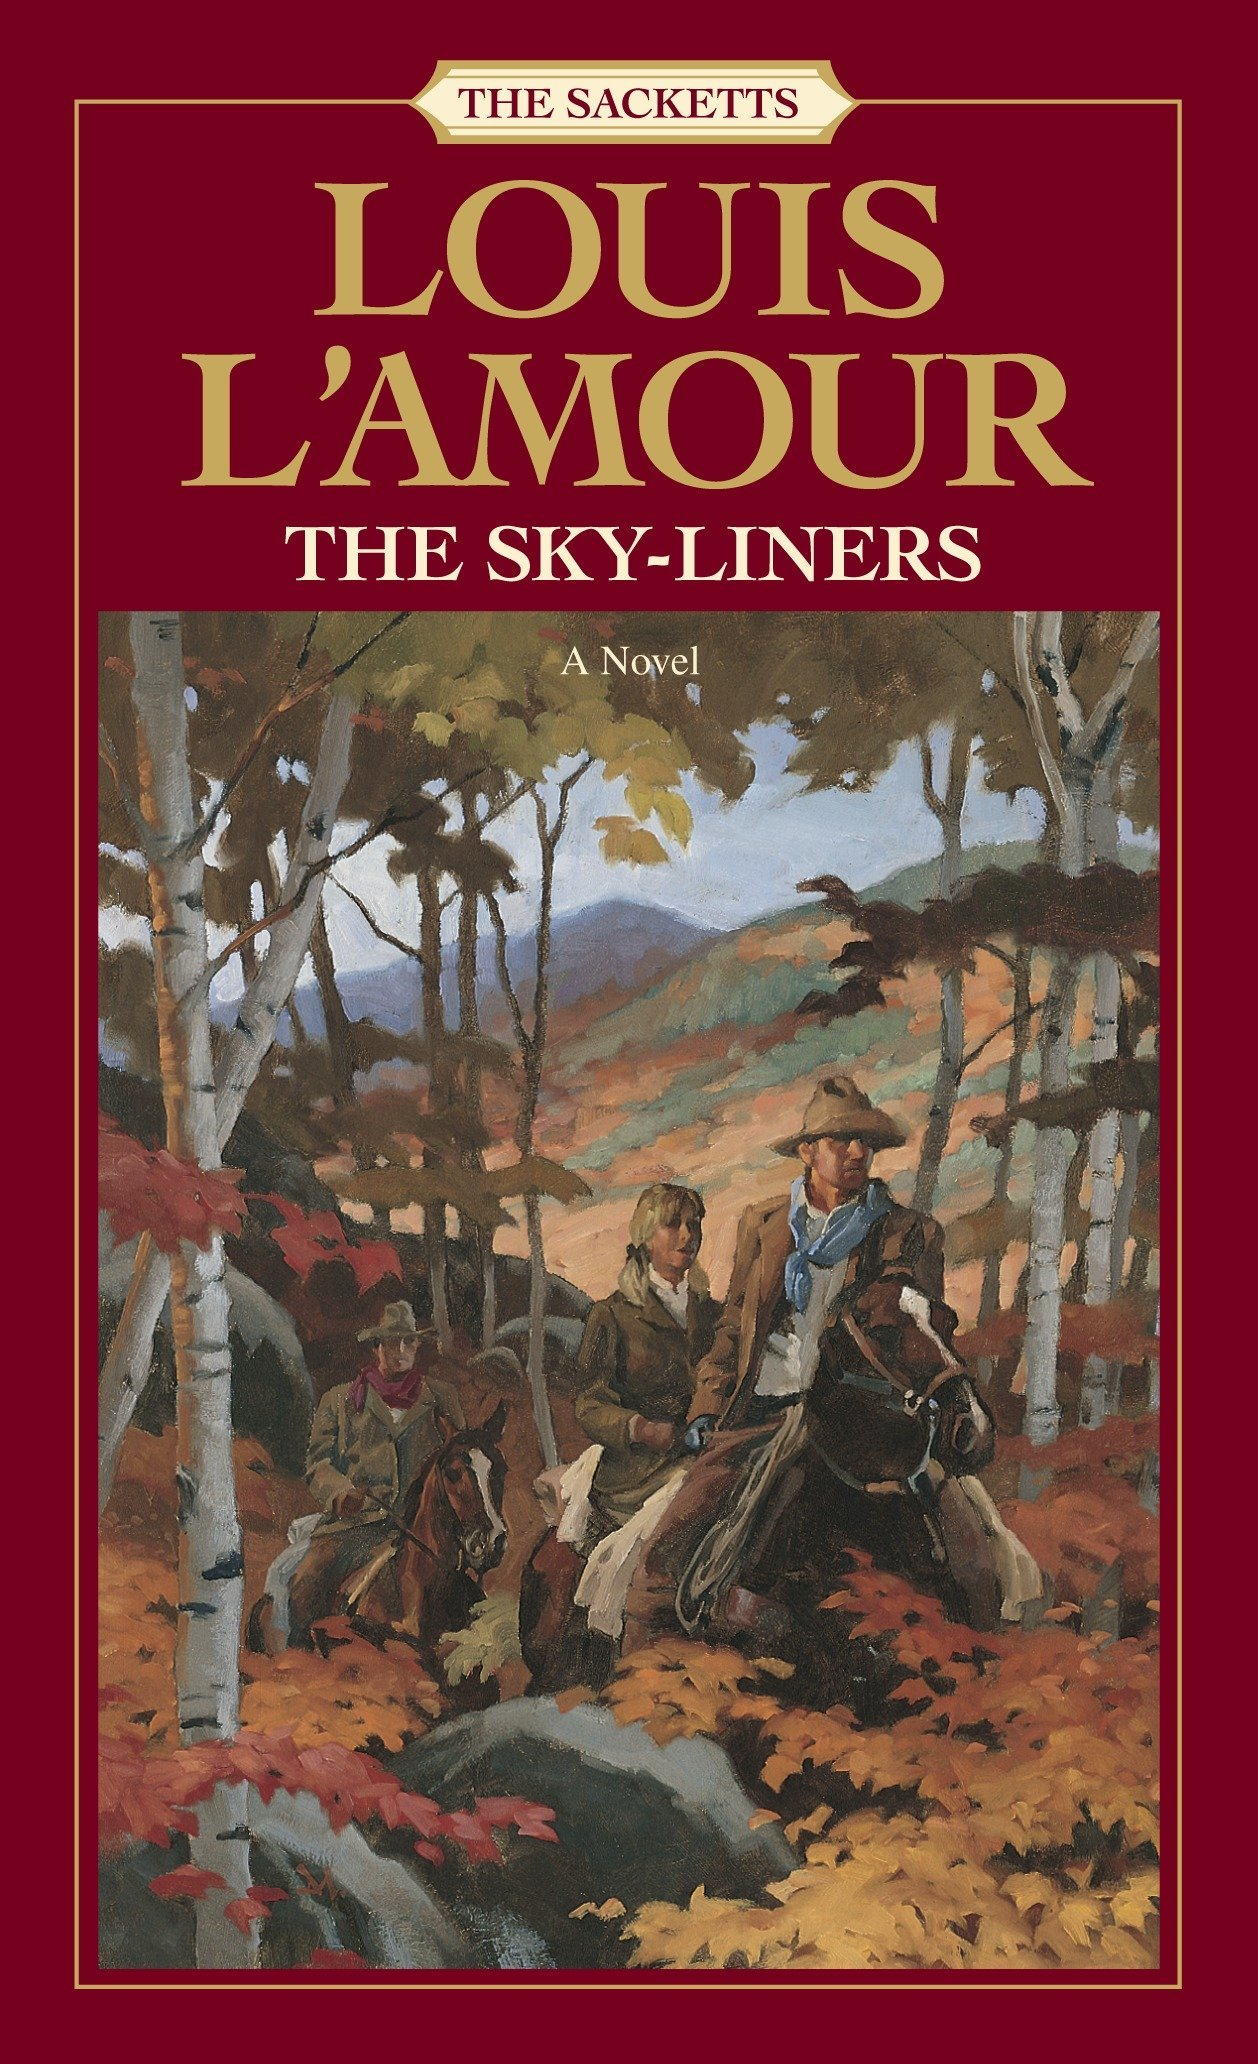 Amazon.com: The Sky-Liners: The Sacketts (9780553276879): L'Amour, Louis:  Books